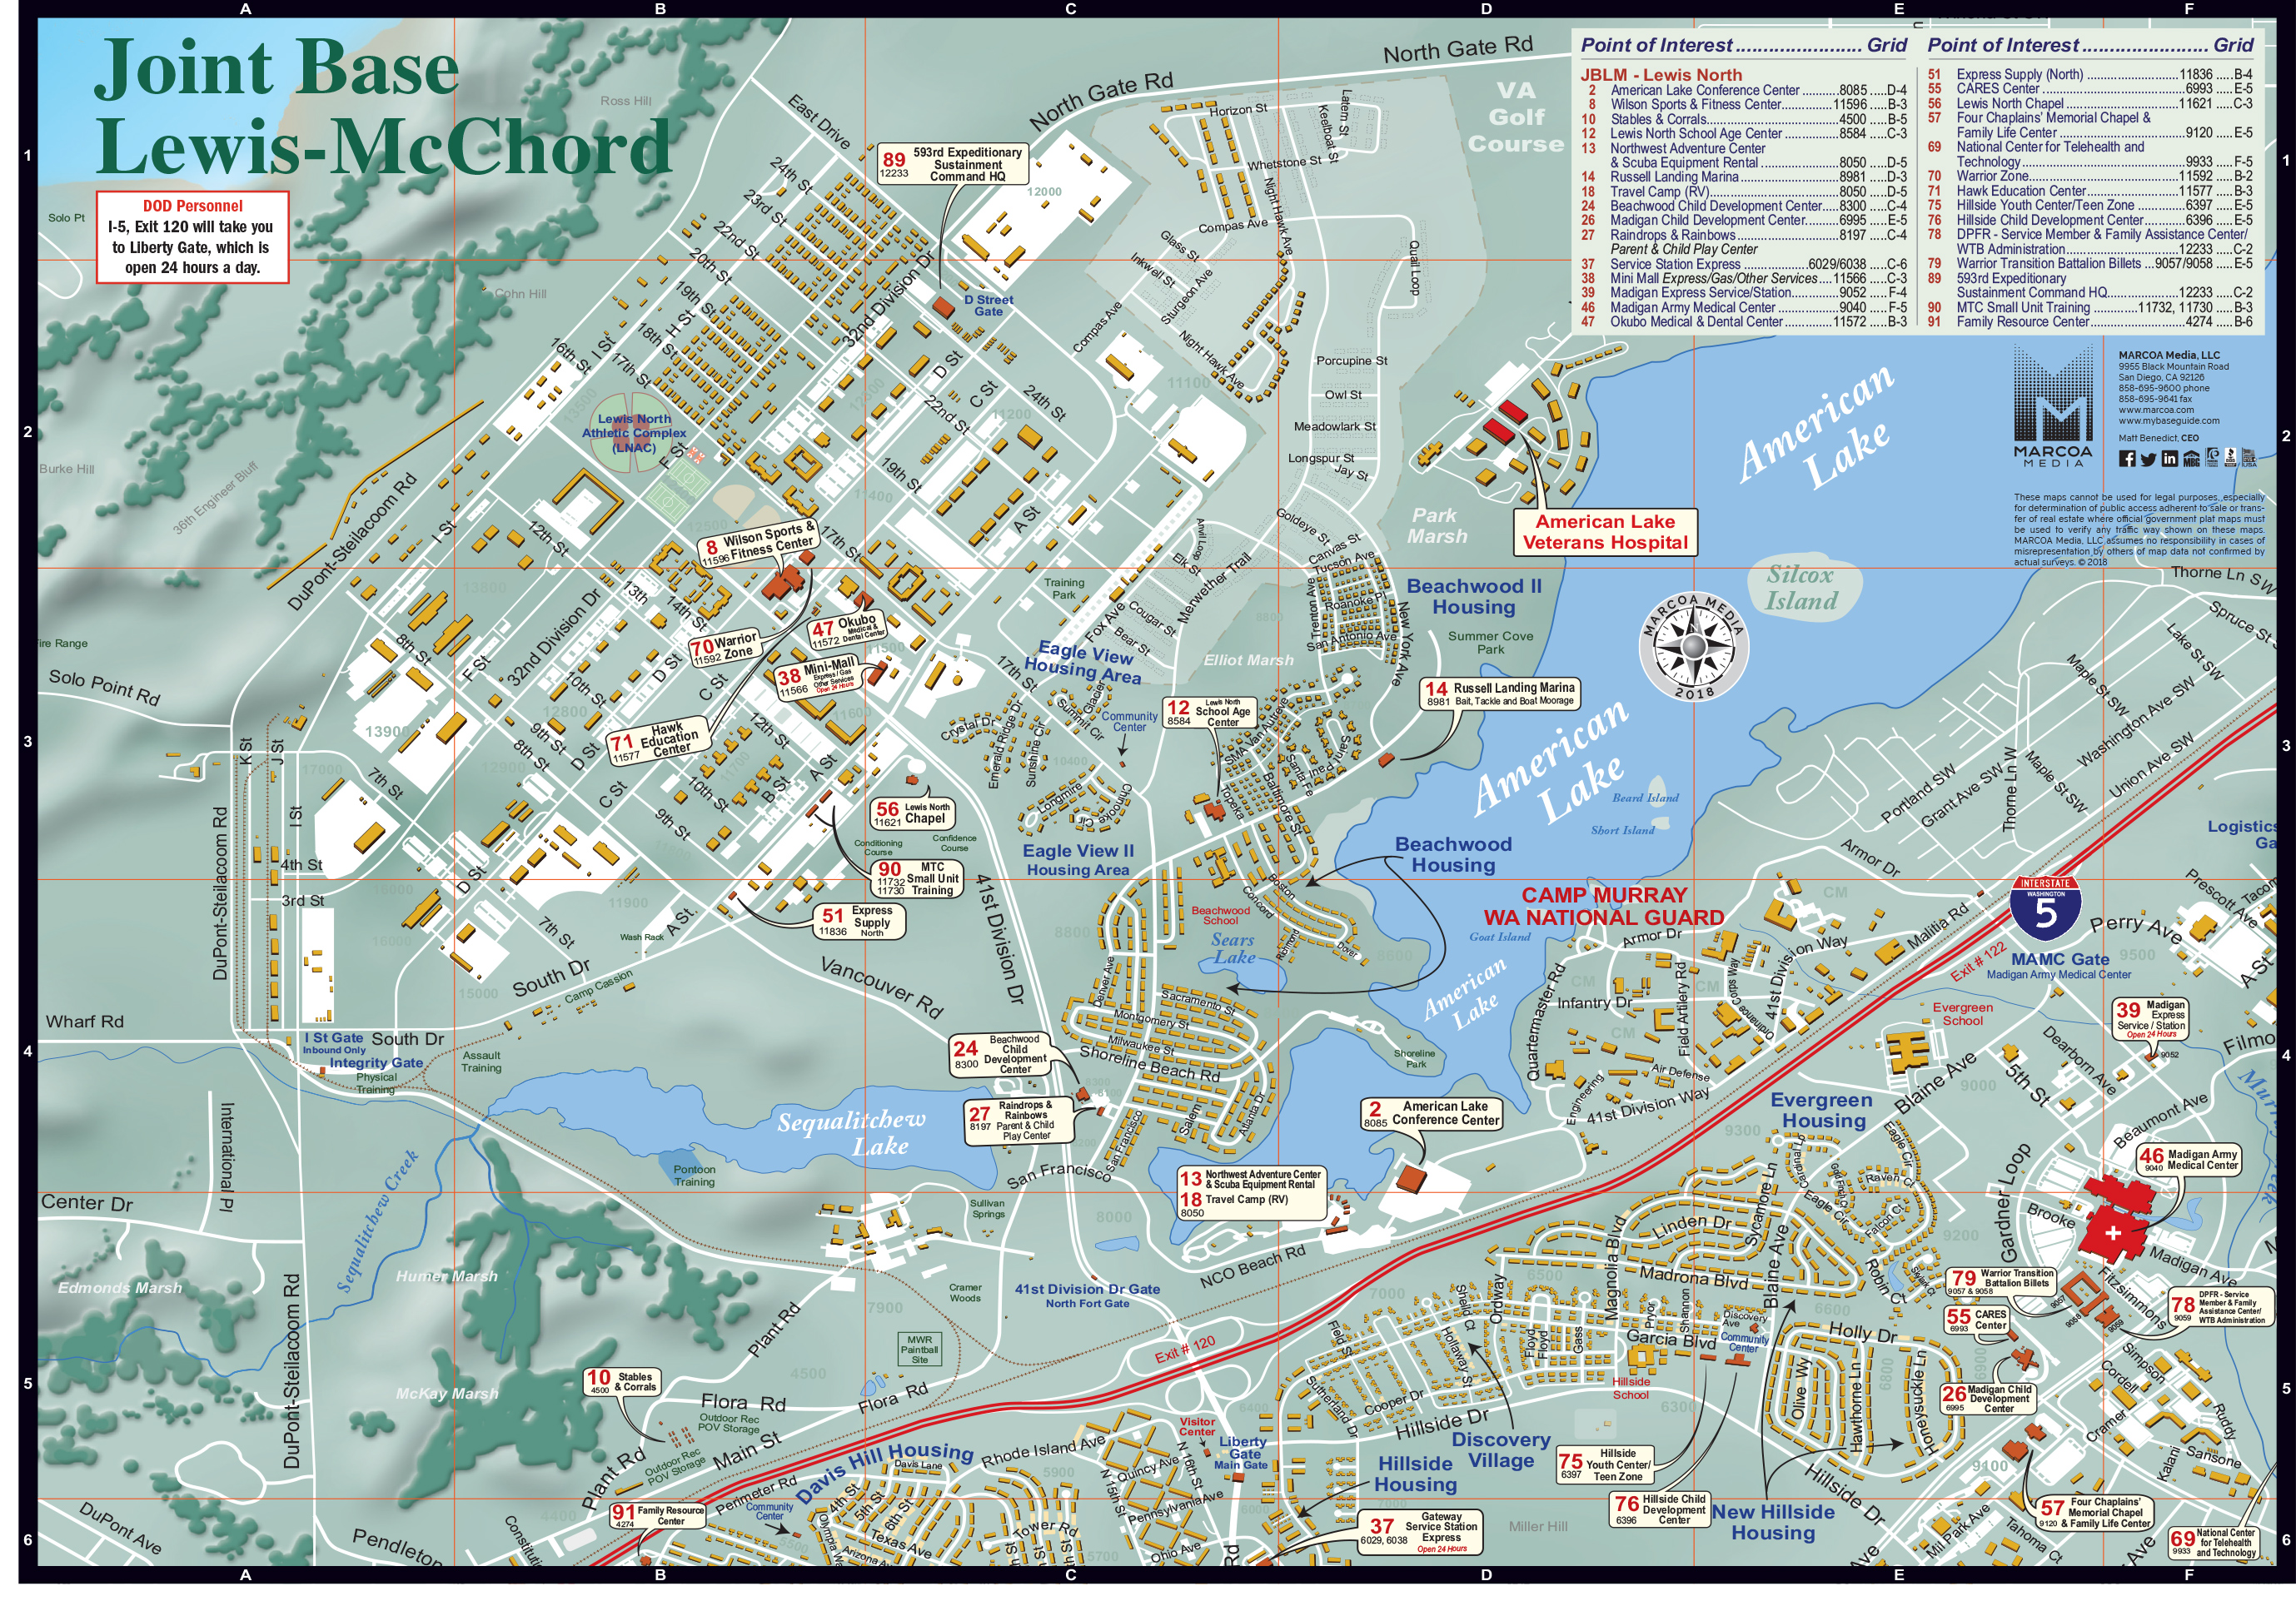 JB_Lewis-McChord_Map_2019-Lewis-North.jpg